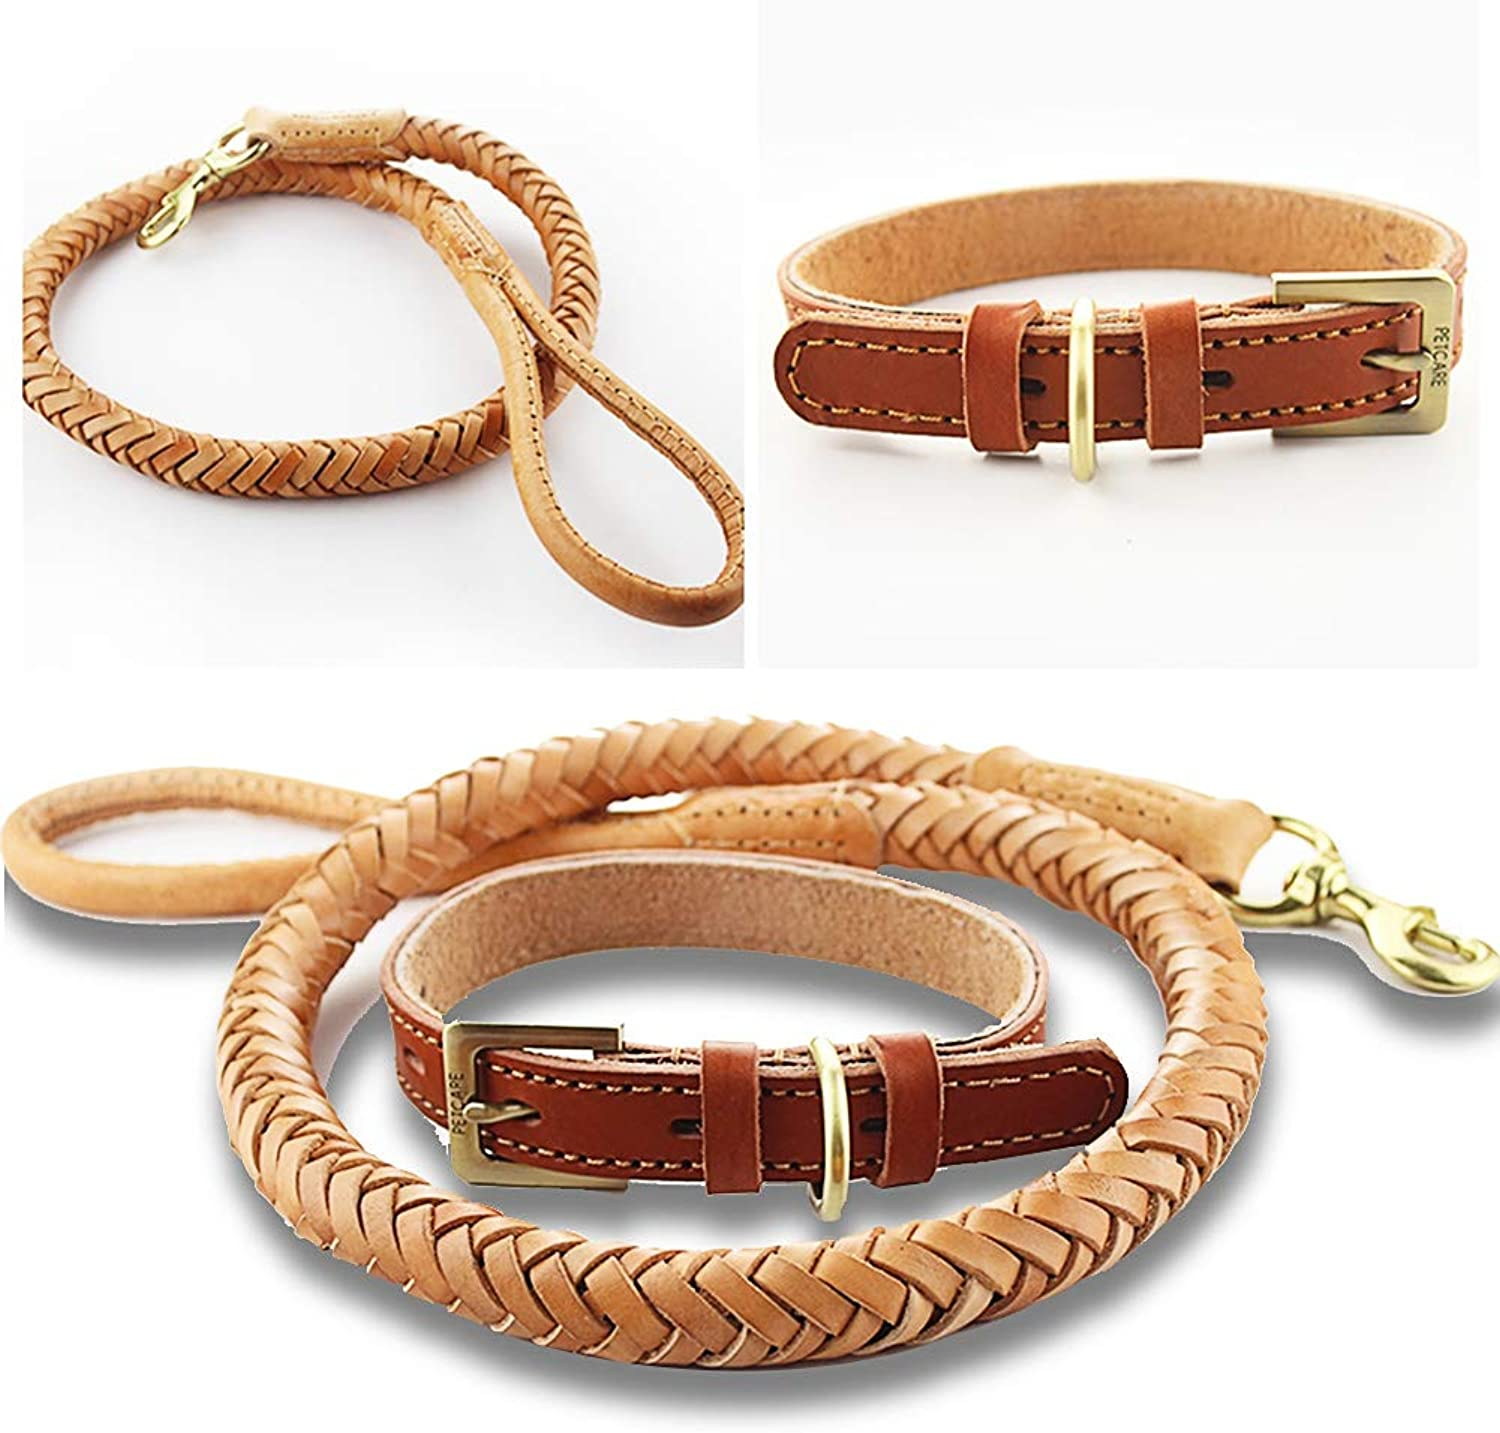 HAOHAO Dog Lead and Collar Set, Handmade Braided Brown Leather Pet Leash for Large Dogs Medium Dogs, 3.6 ft Long 1.1 Inch Wide Durable Thick Genuine Leather Tough Dog Leads